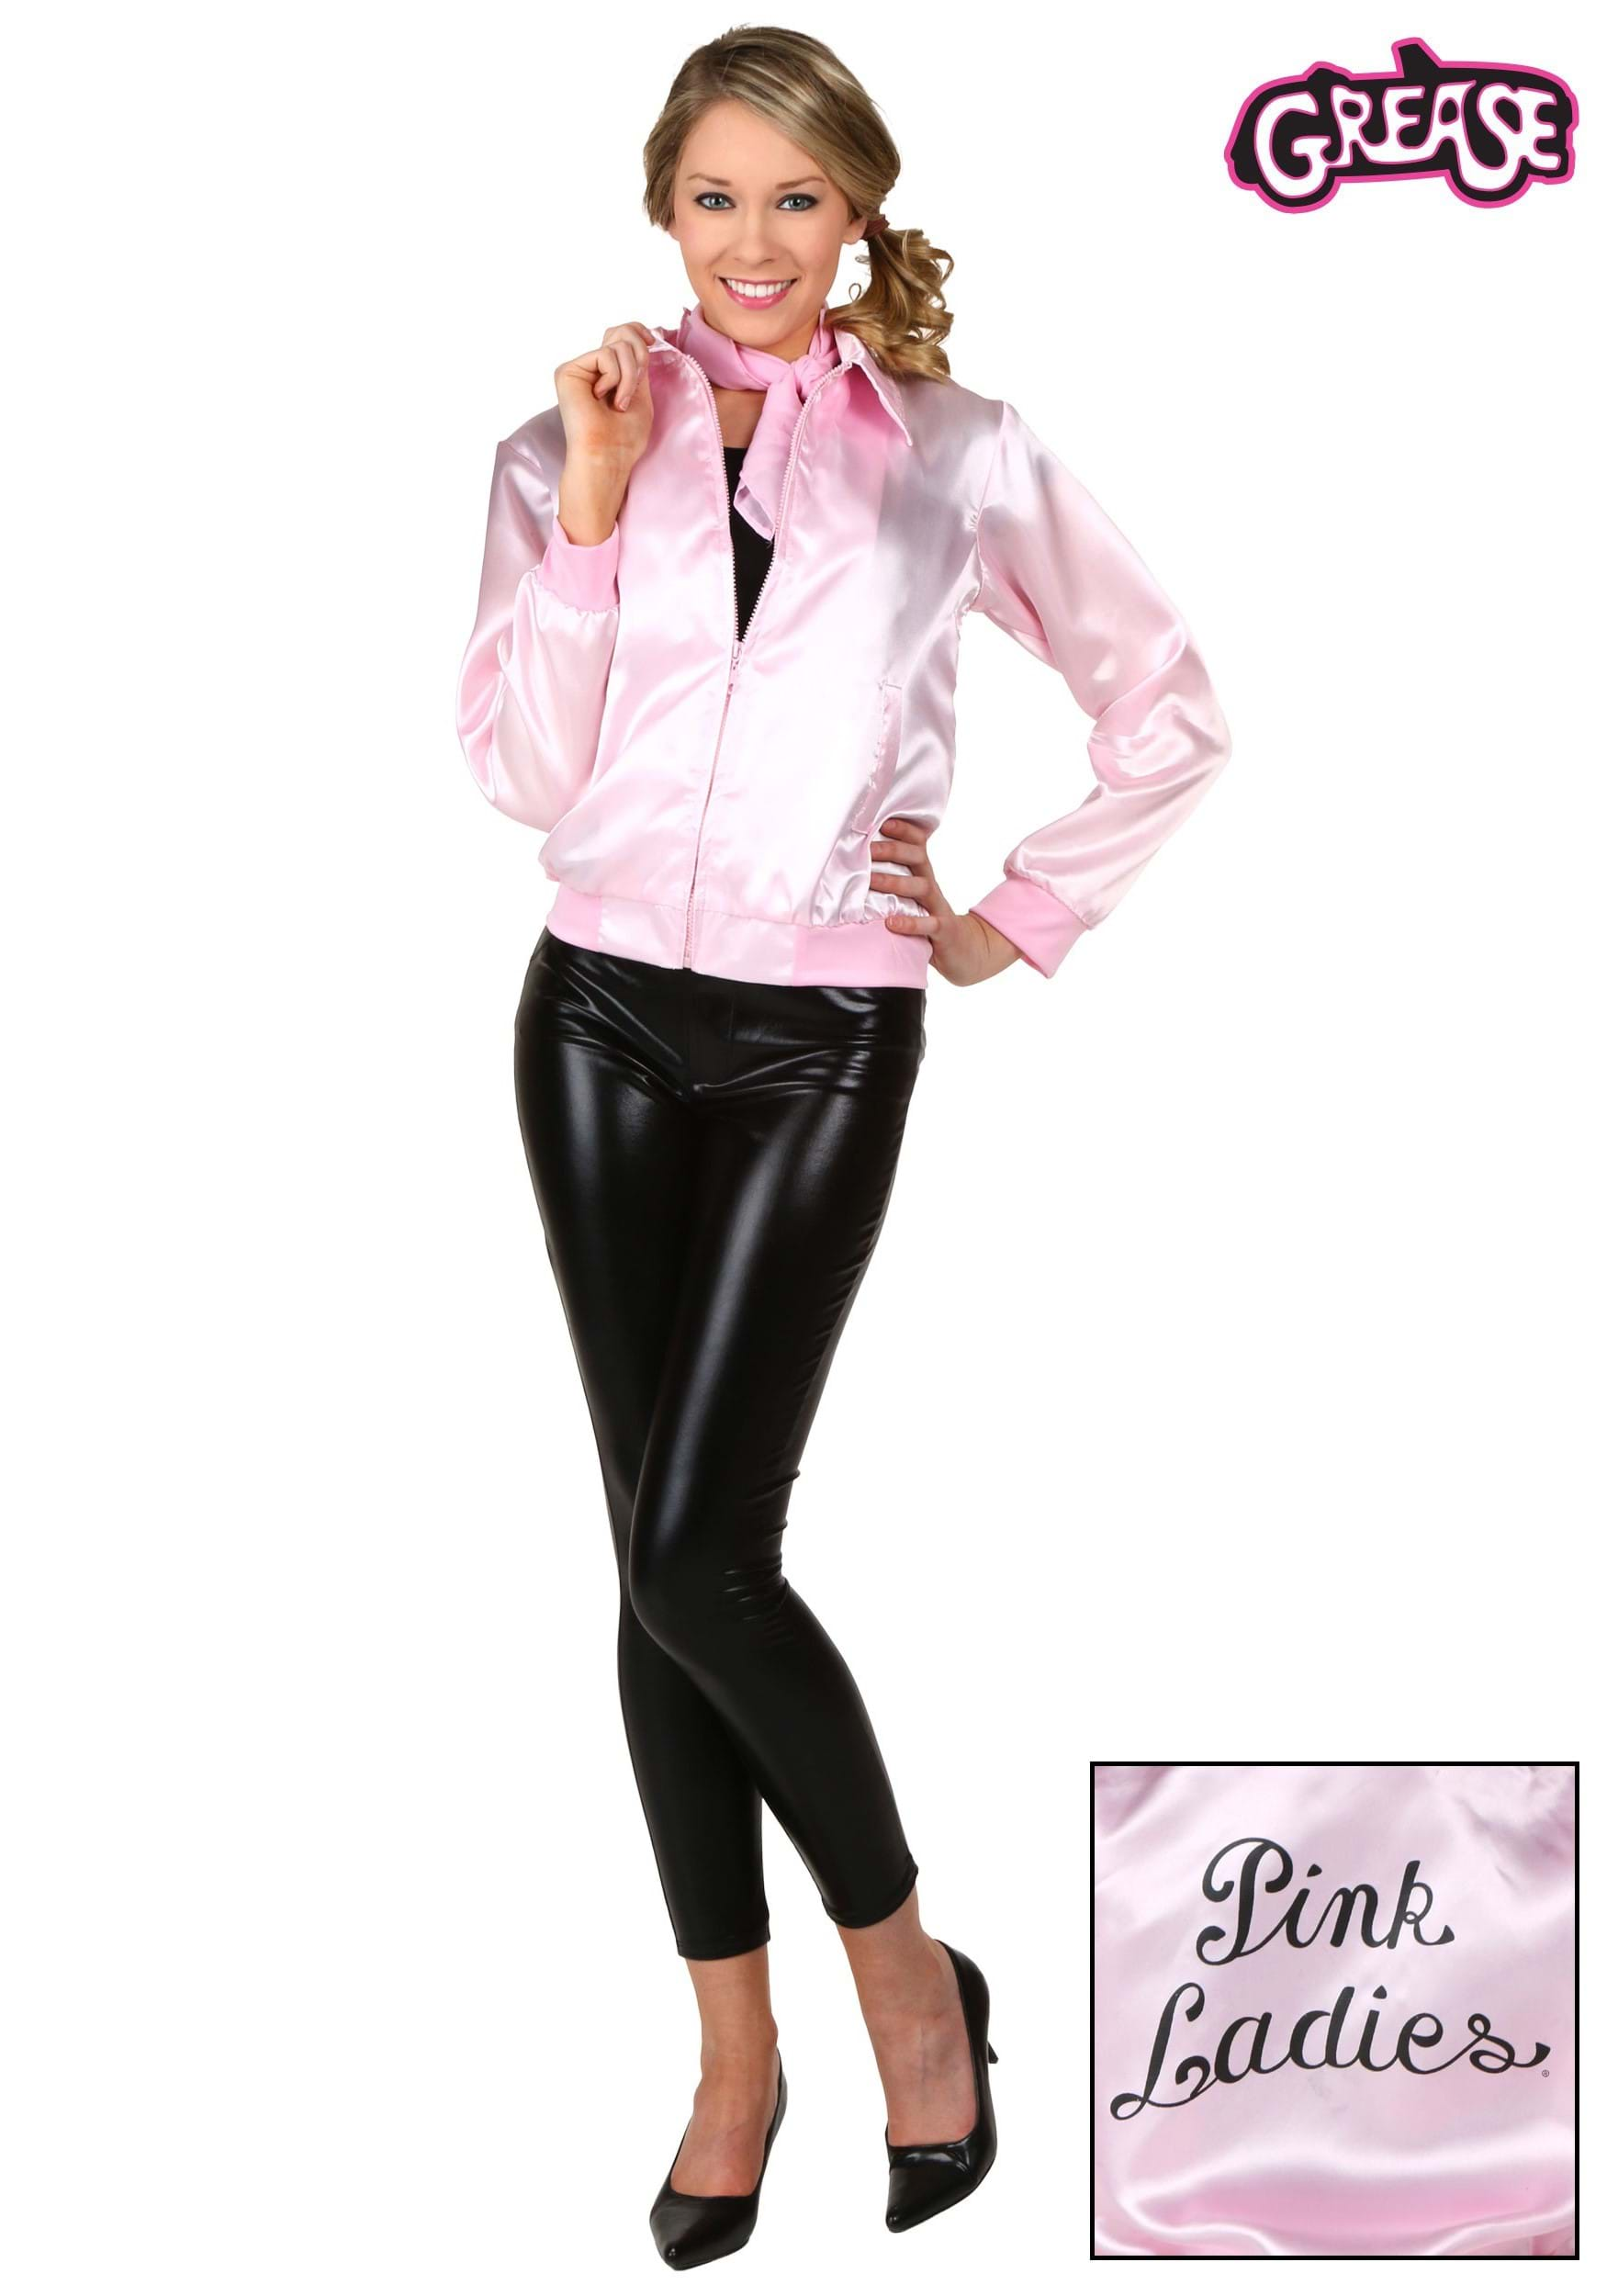 grease pink ladies jacket package includes jacket with pink ladies ...